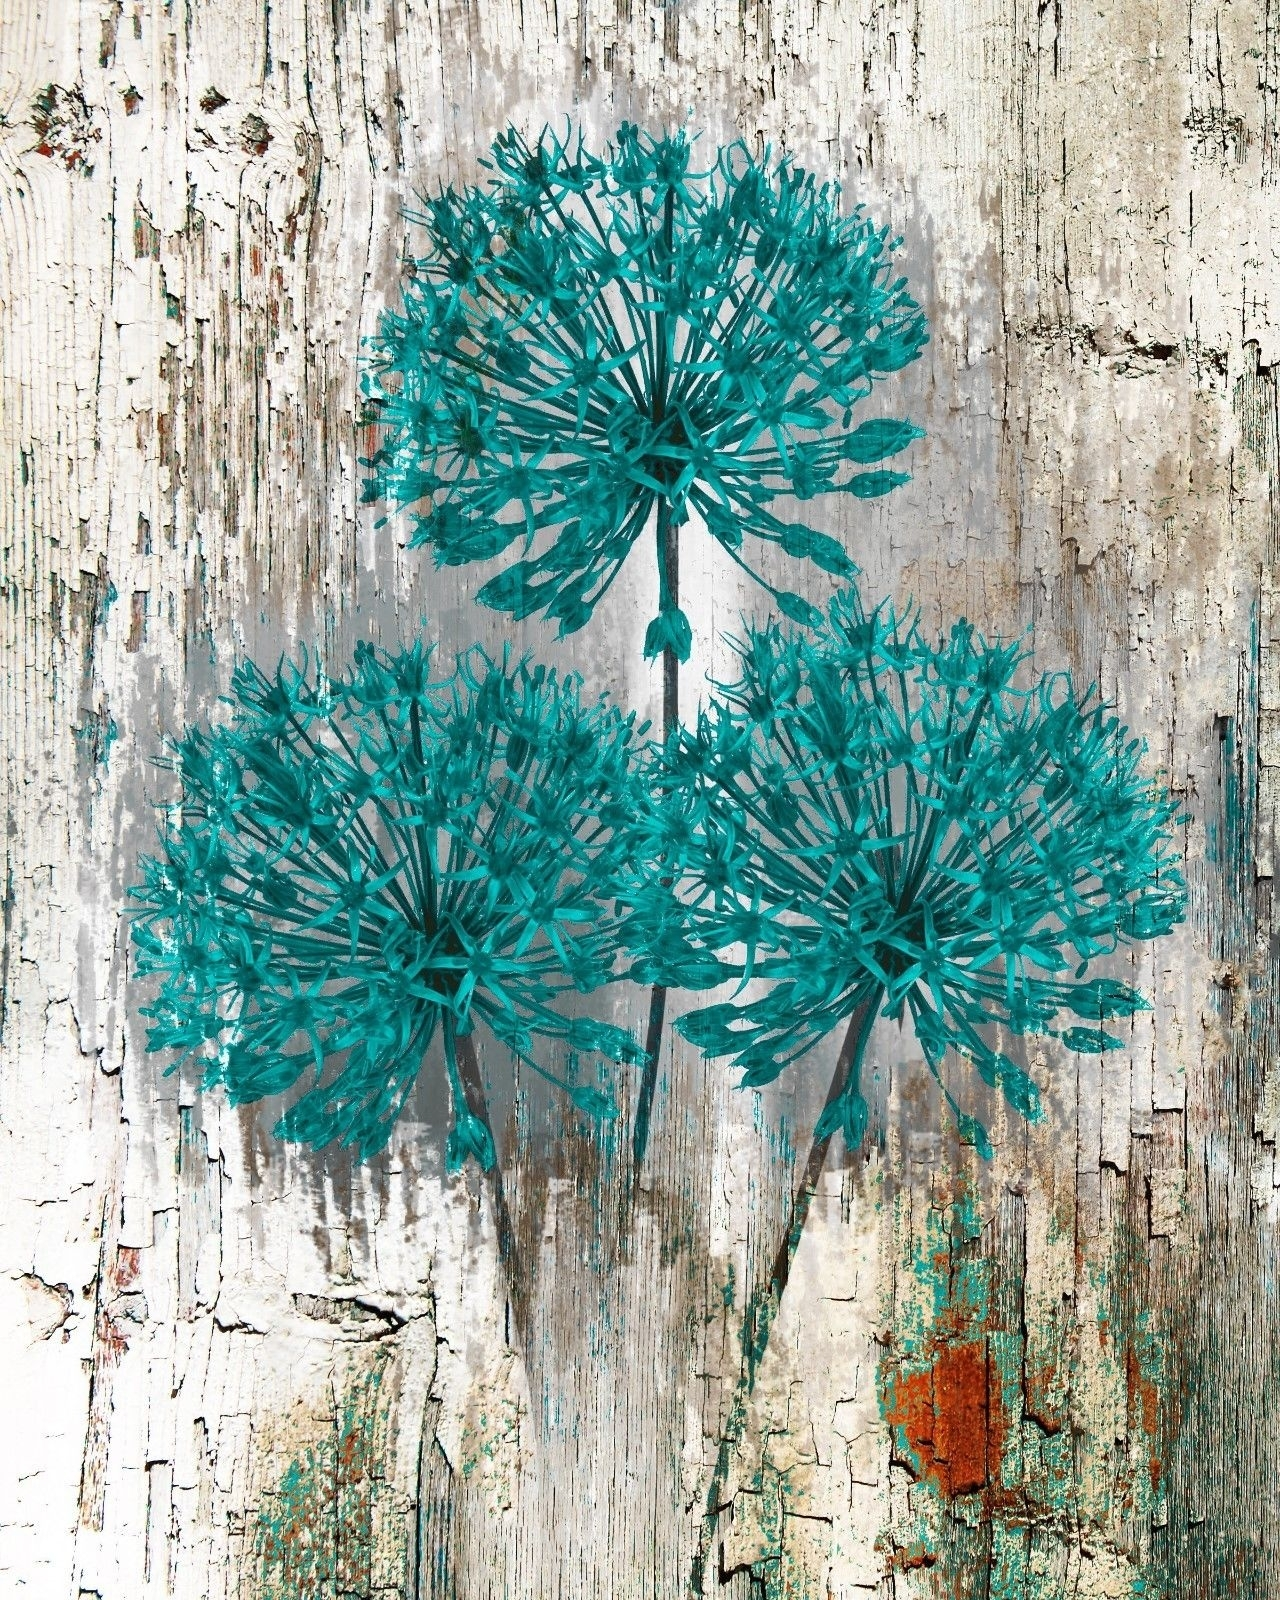 Teal Brown Rustic Distressed Flower Wall Art Home Decor Matted Intended For Newest Teal And Brown Wall Art (View 5 of 20)